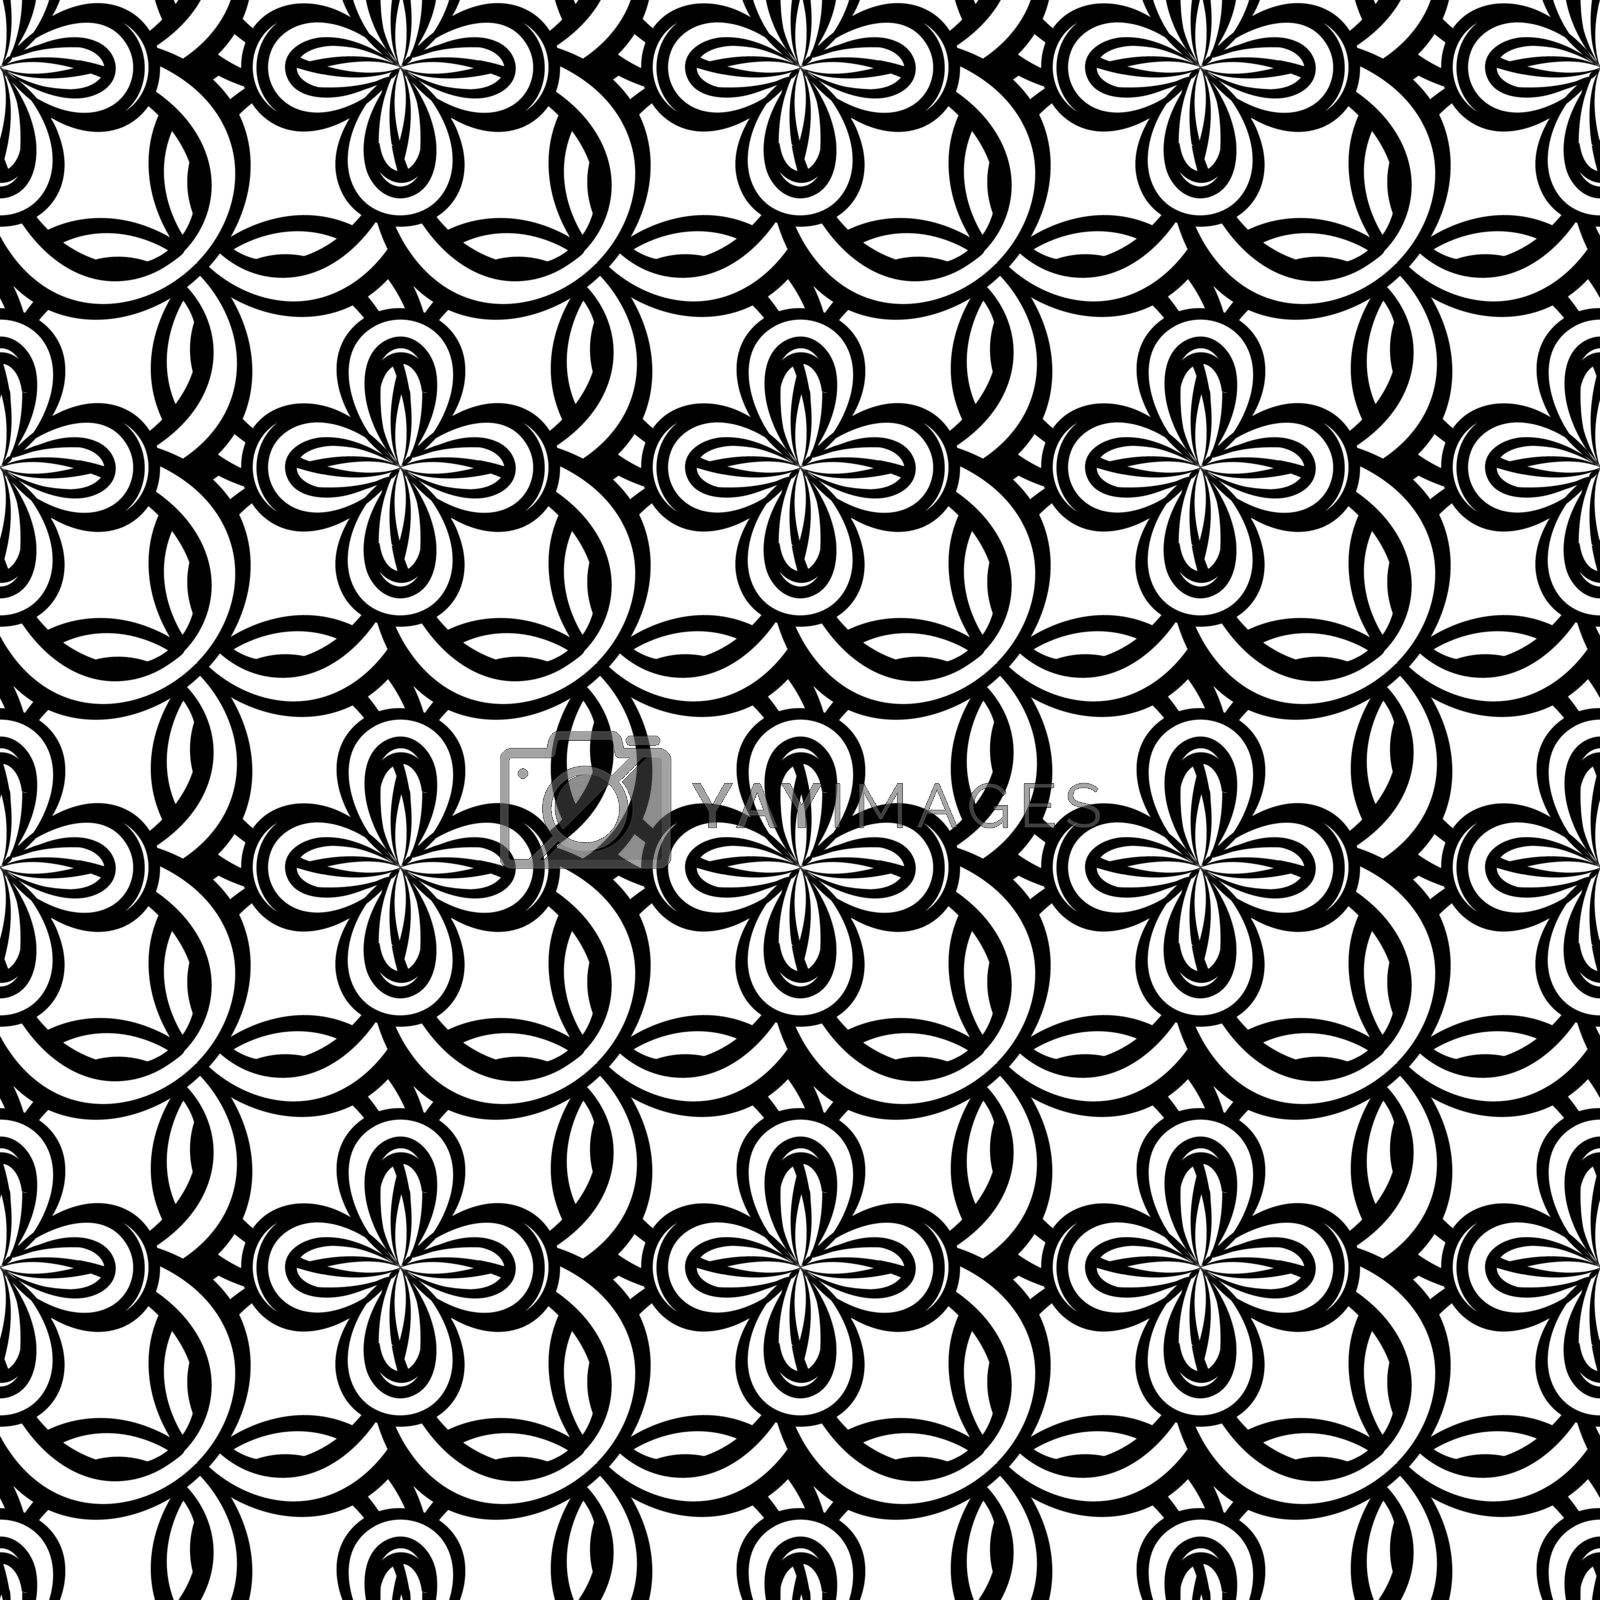 Black and white seamless pattern with abstract flowers in tribal celtic style